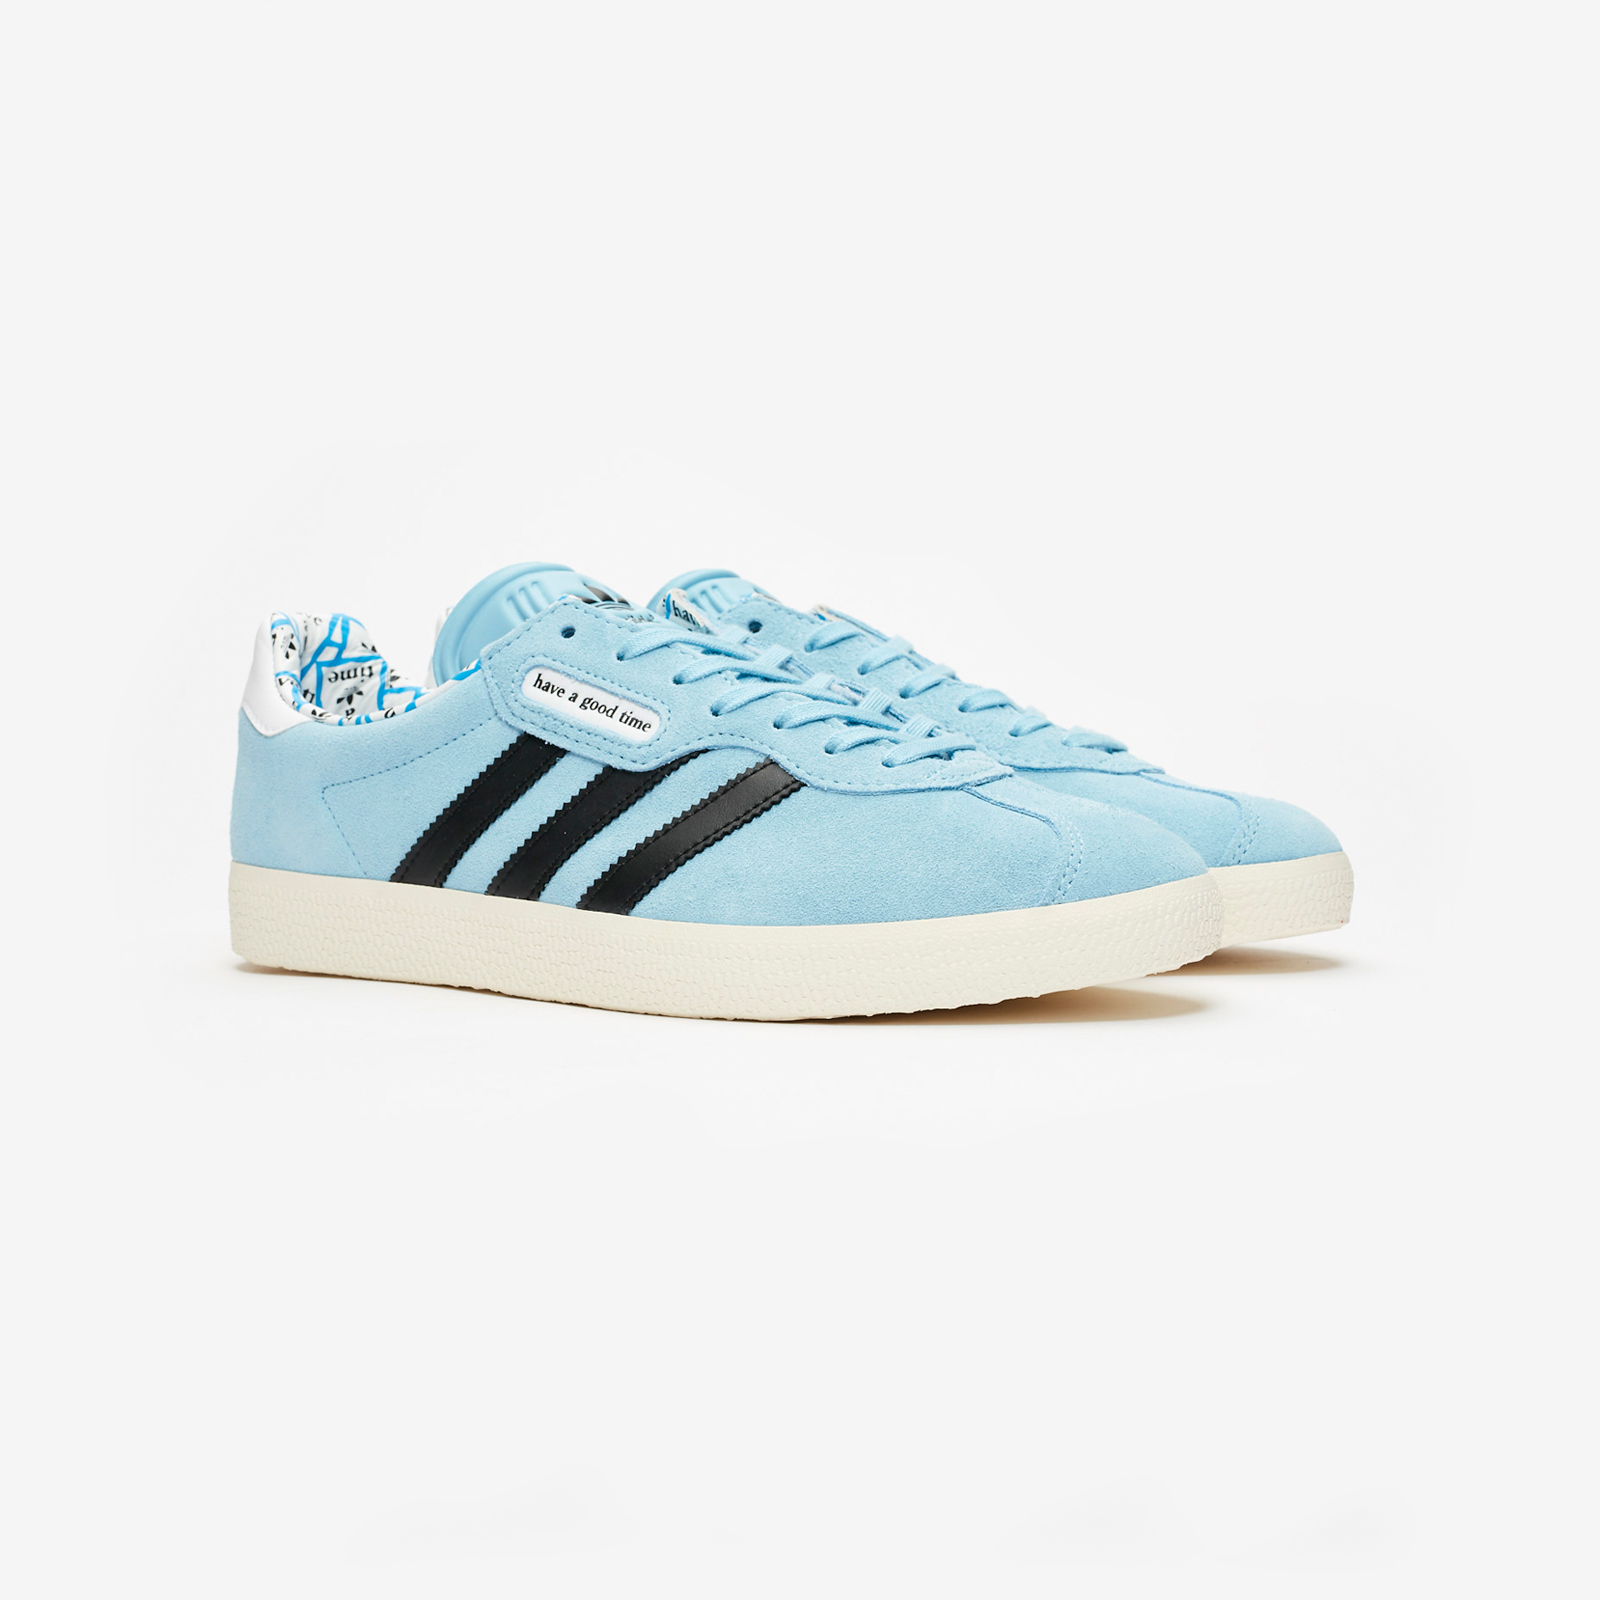 b0268a41609 adidas Gazelle Super x Have A Good Time - G54785 - Sneakersnstuff ...